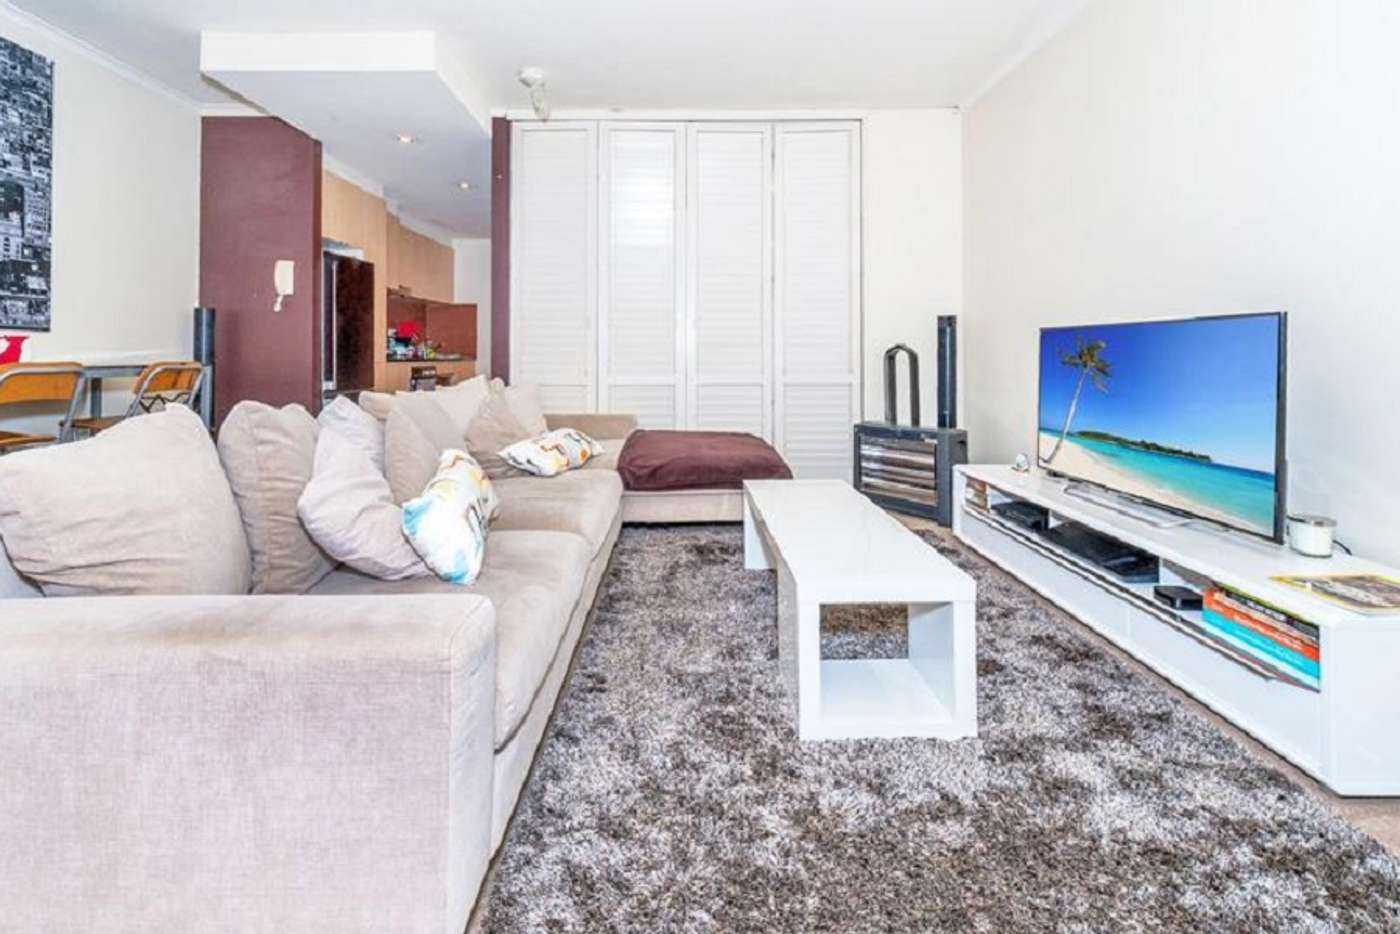 Main view of Homely apartment listing, 266 Pitt Street, Waterloo NSW 2017